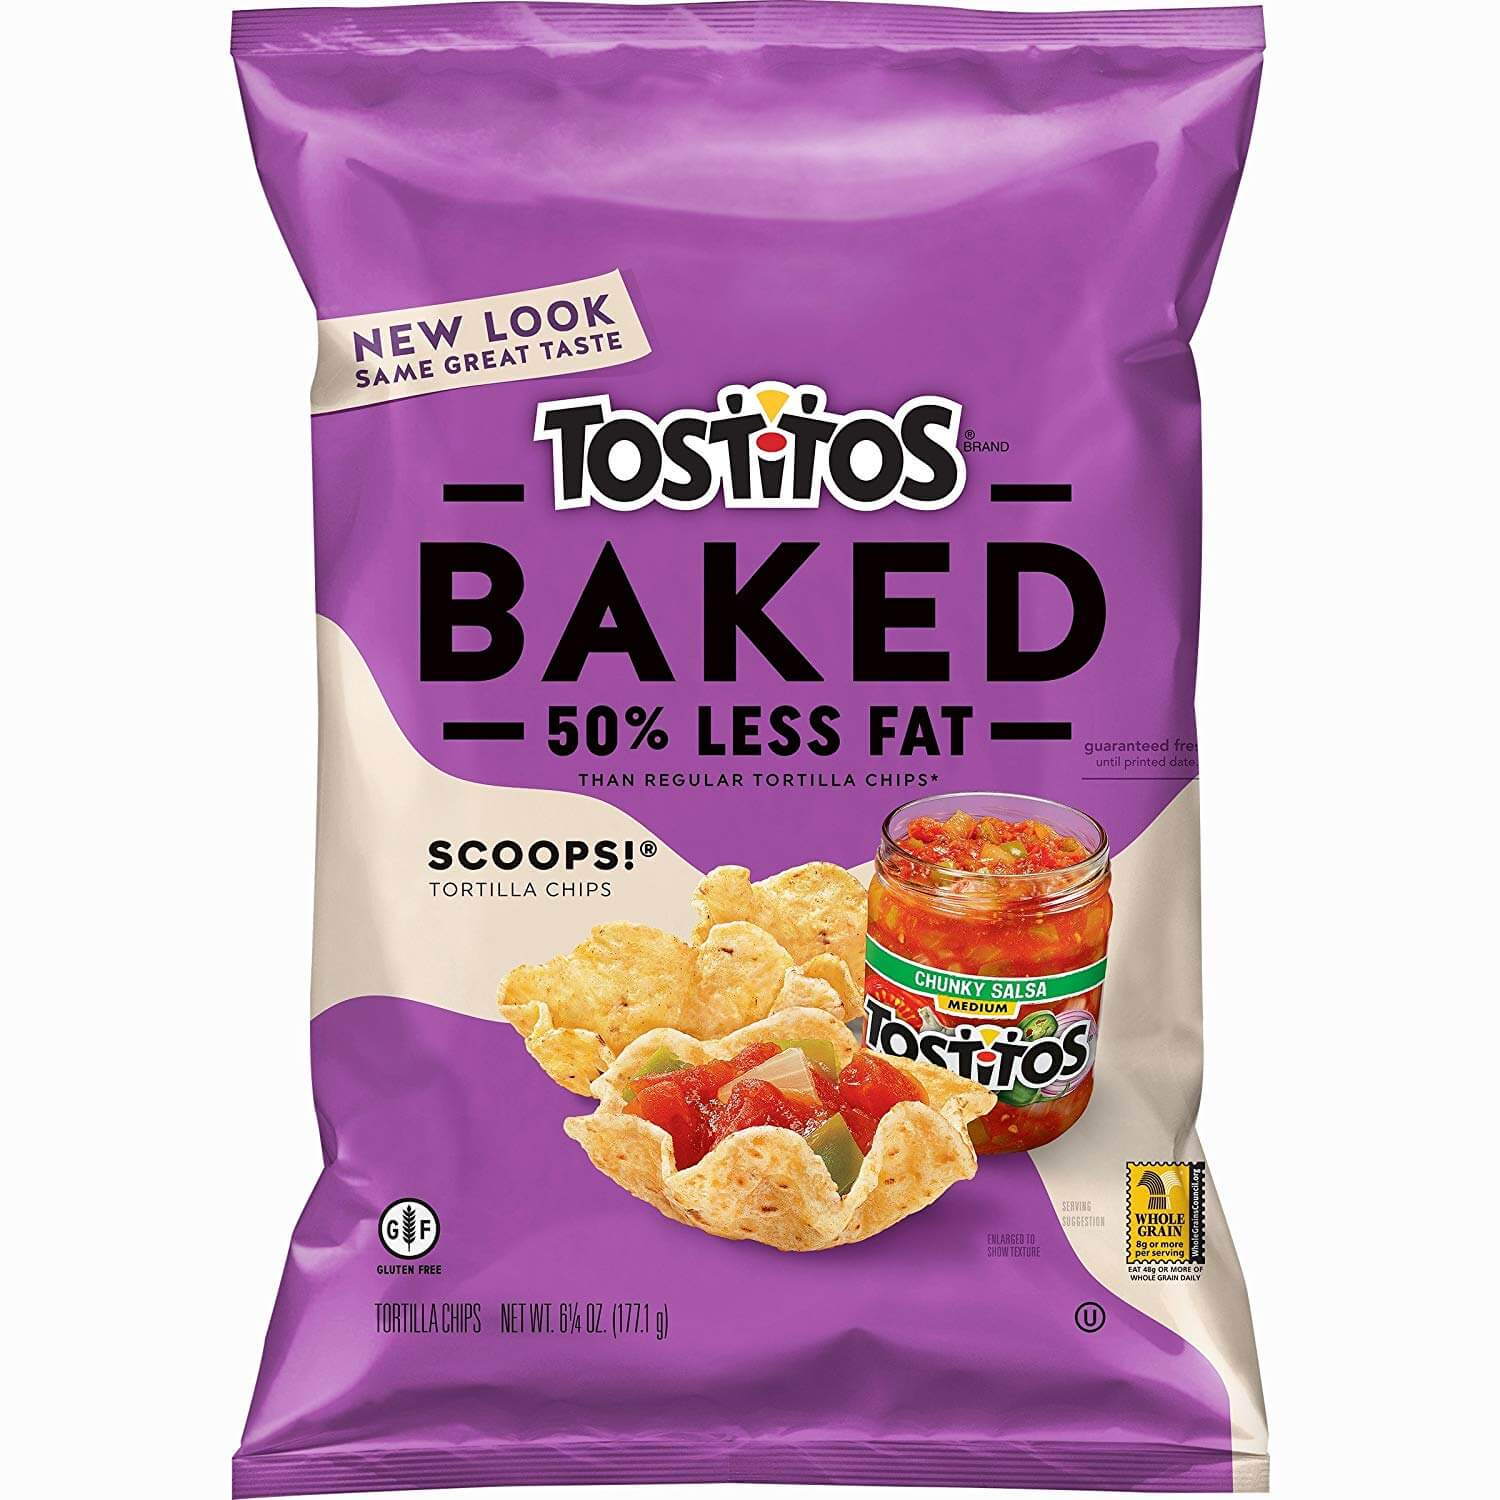 Tostitos Oven Baked Tortilla Chips